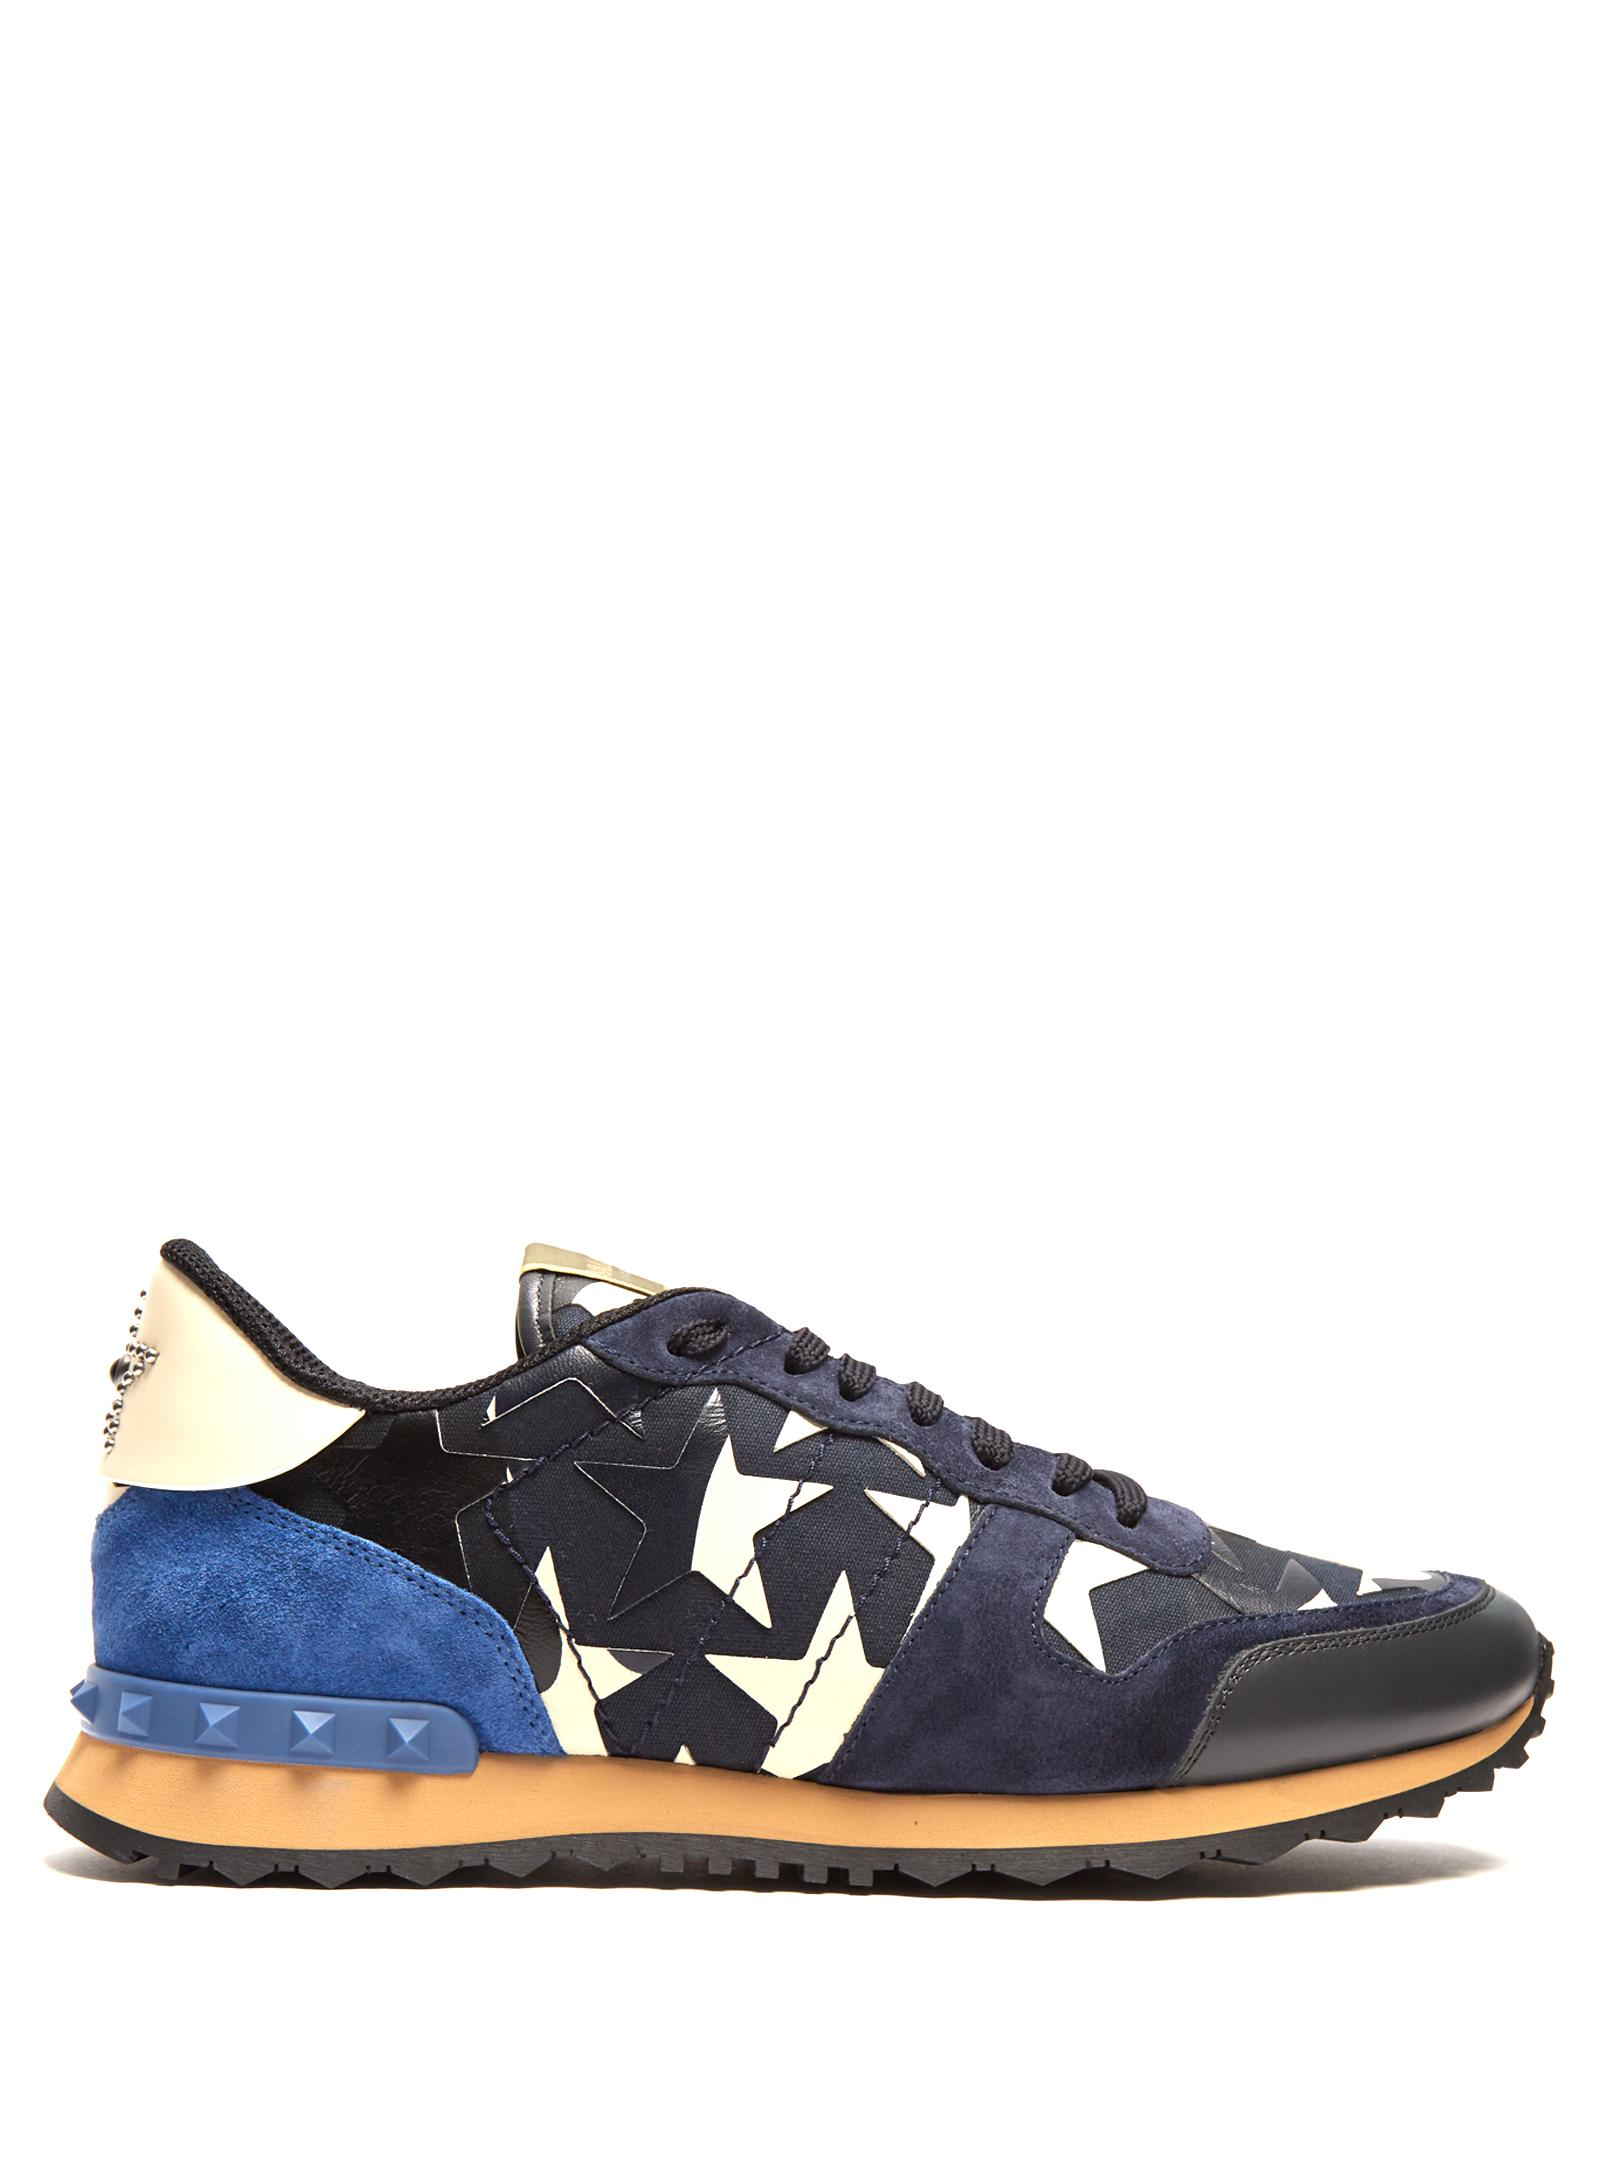 209ed7d6be4 Lyst - Valentino Rockrunner Camustars Trainers in Blue for Men